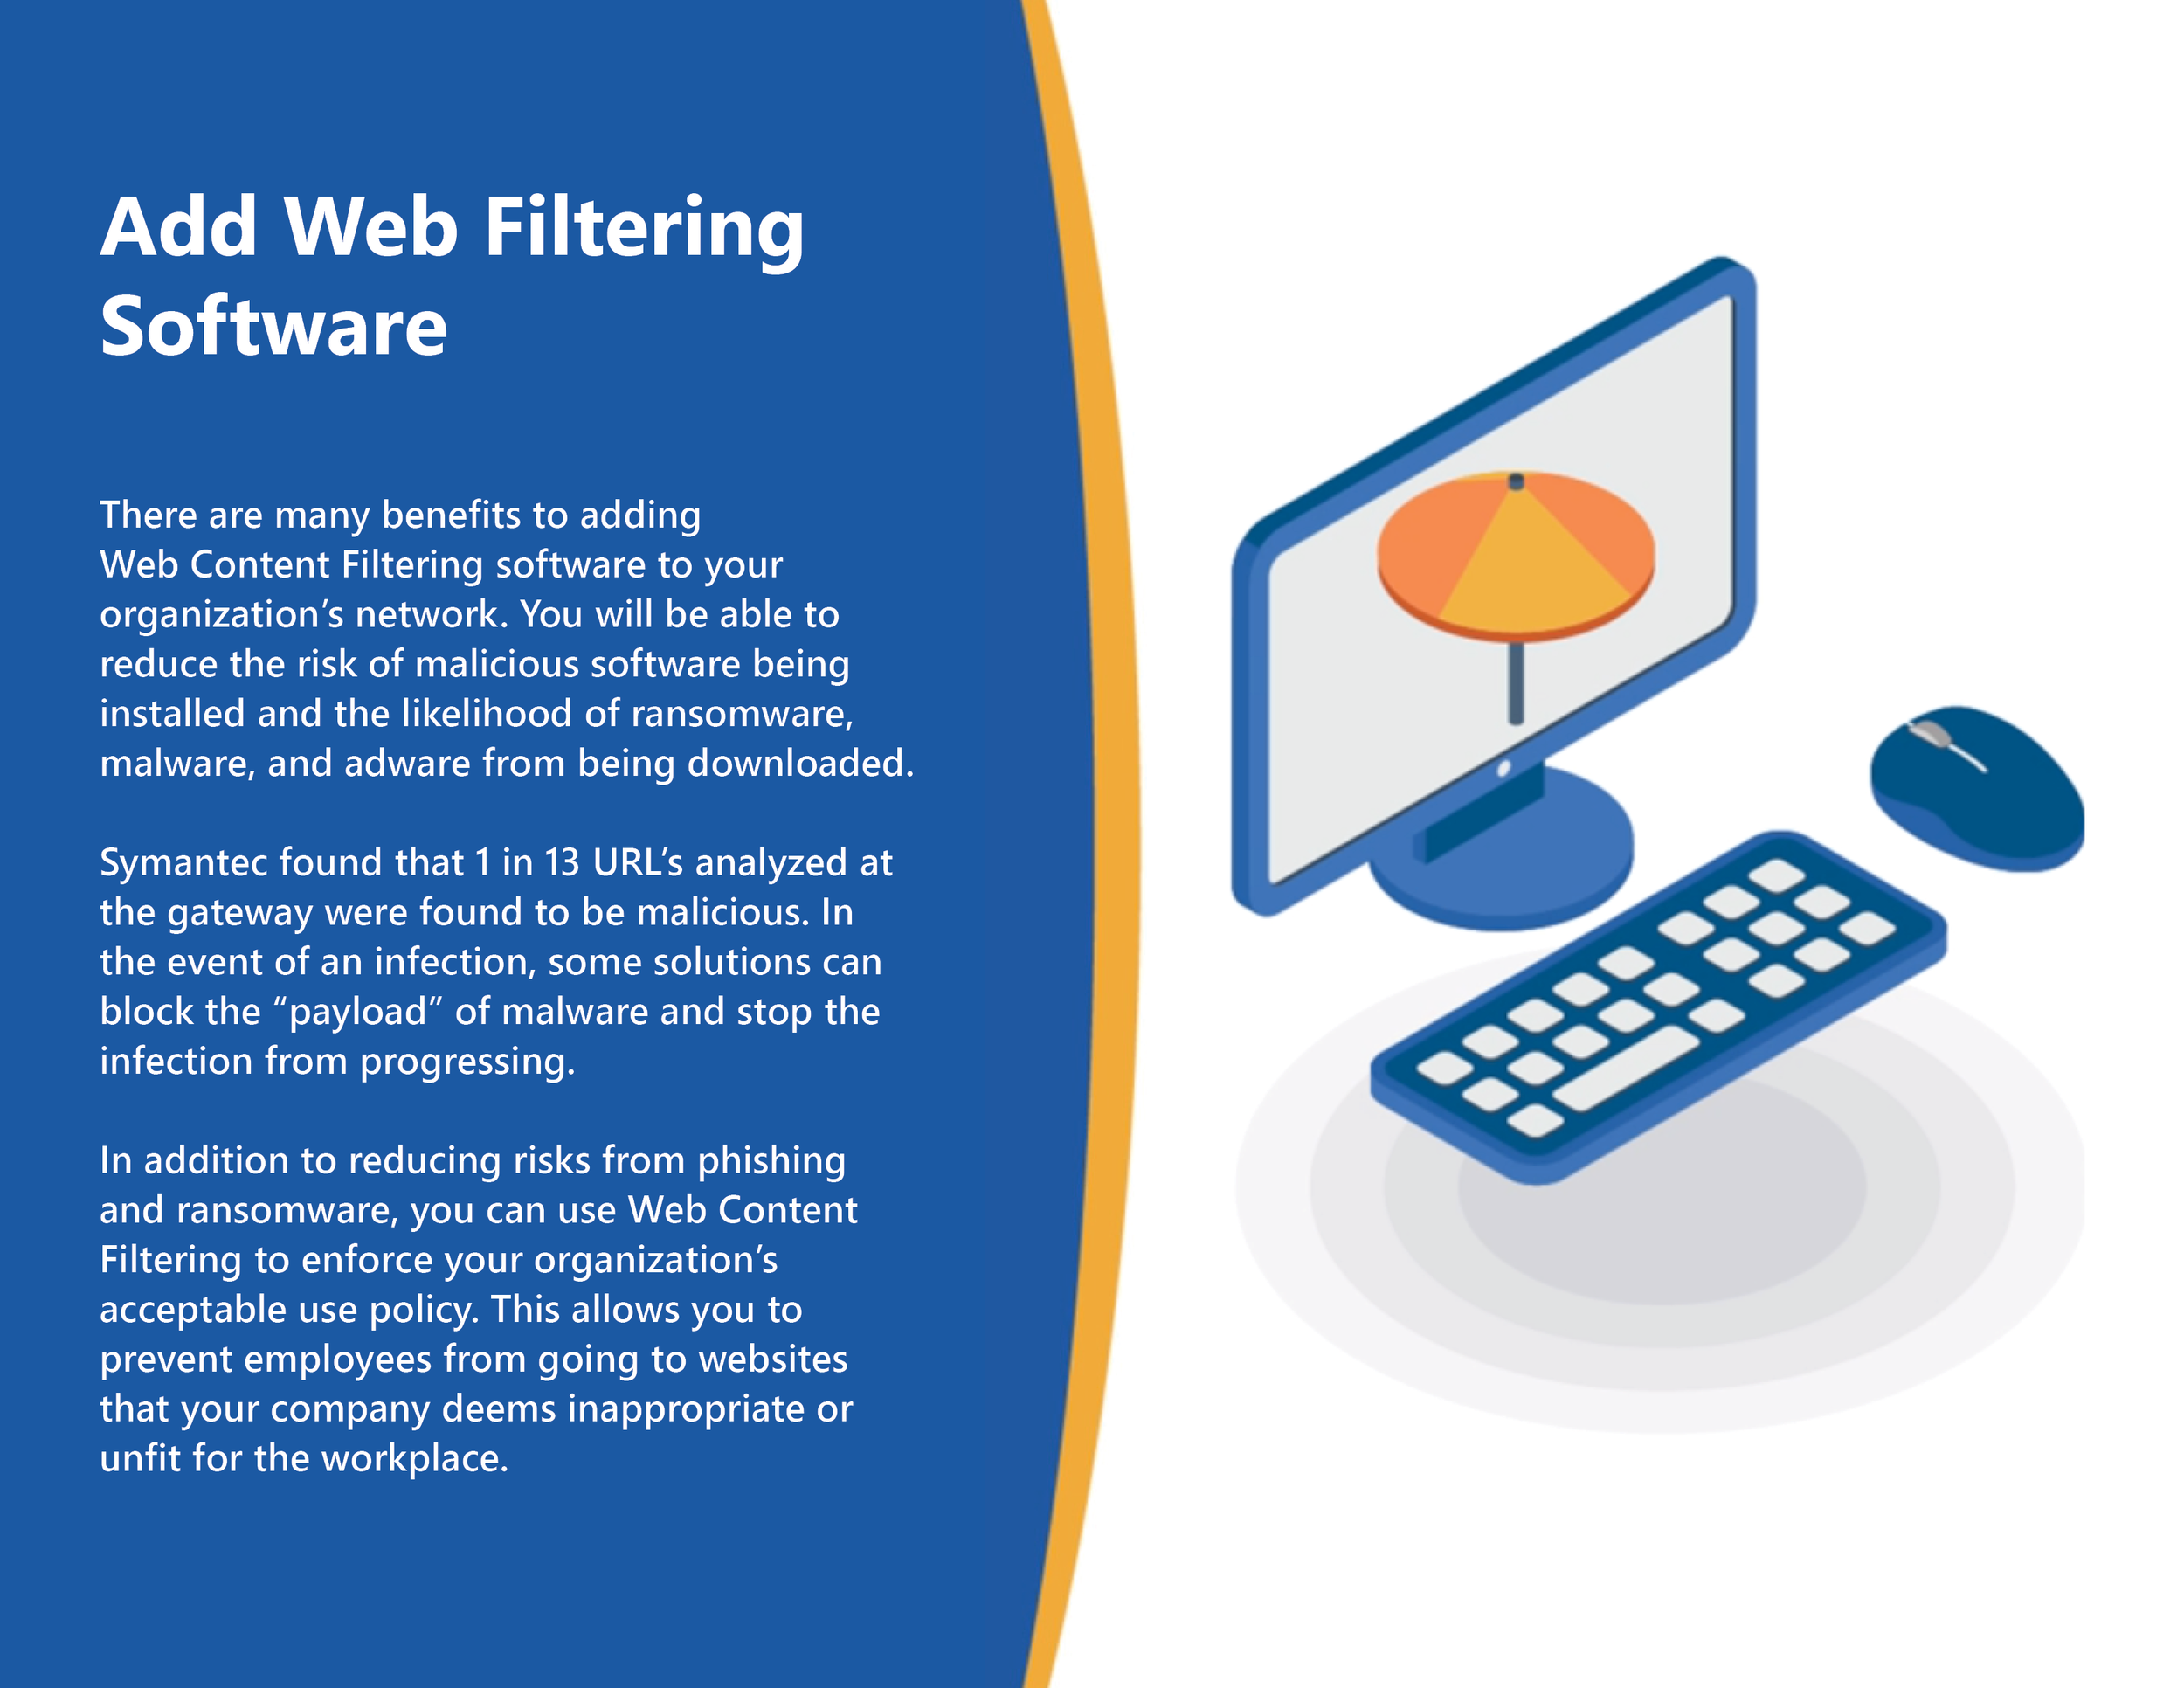 Add Web Filtering Software